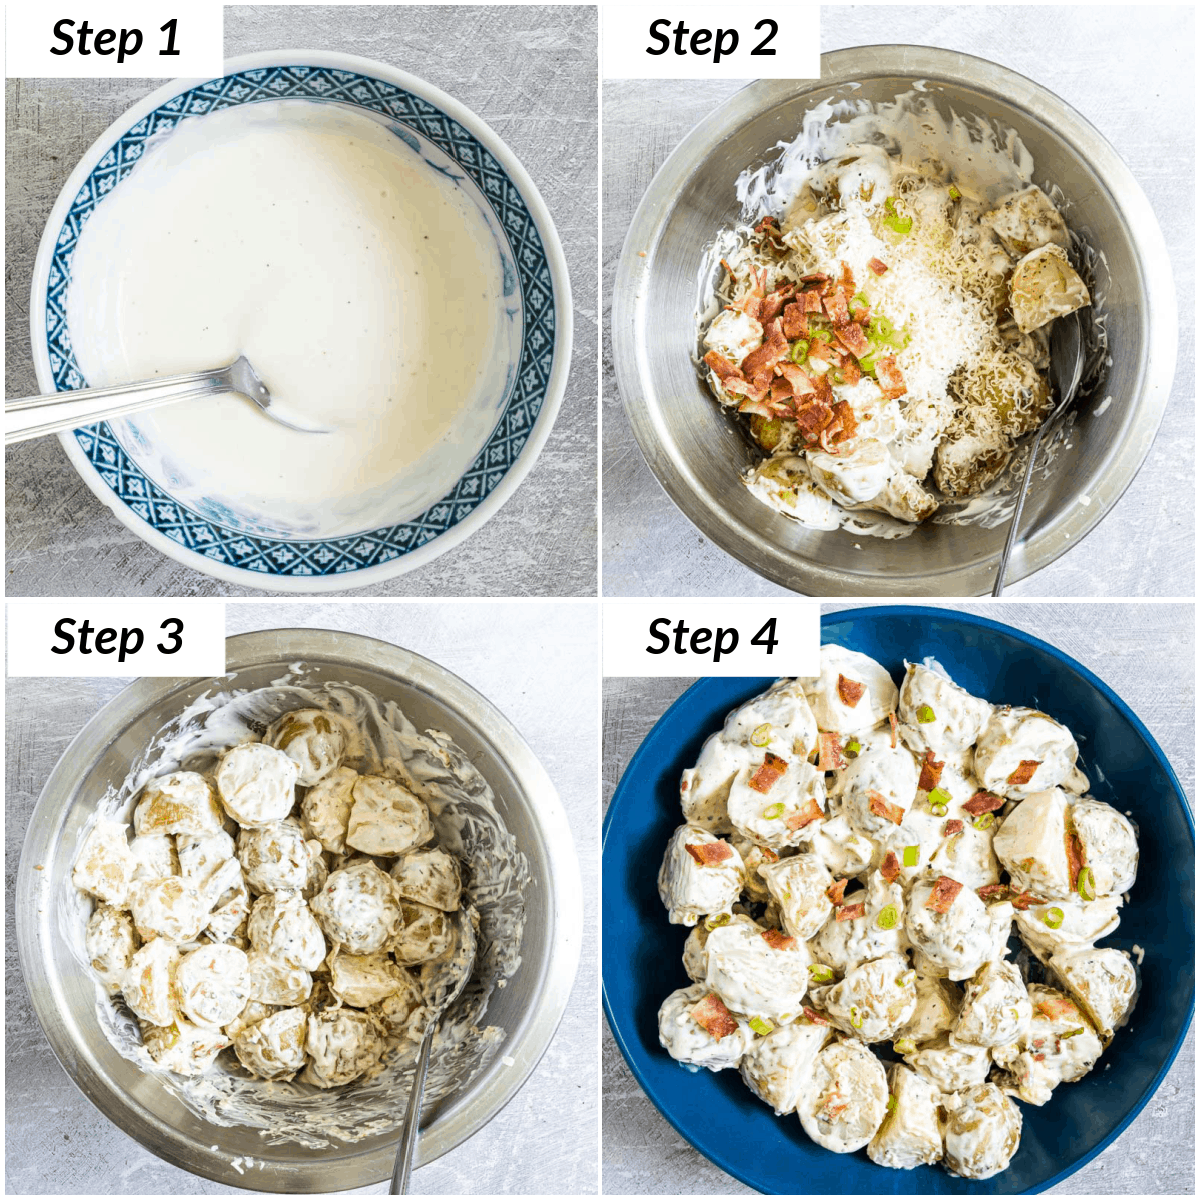 image collage showing the steps for making loaded ranch potato salad